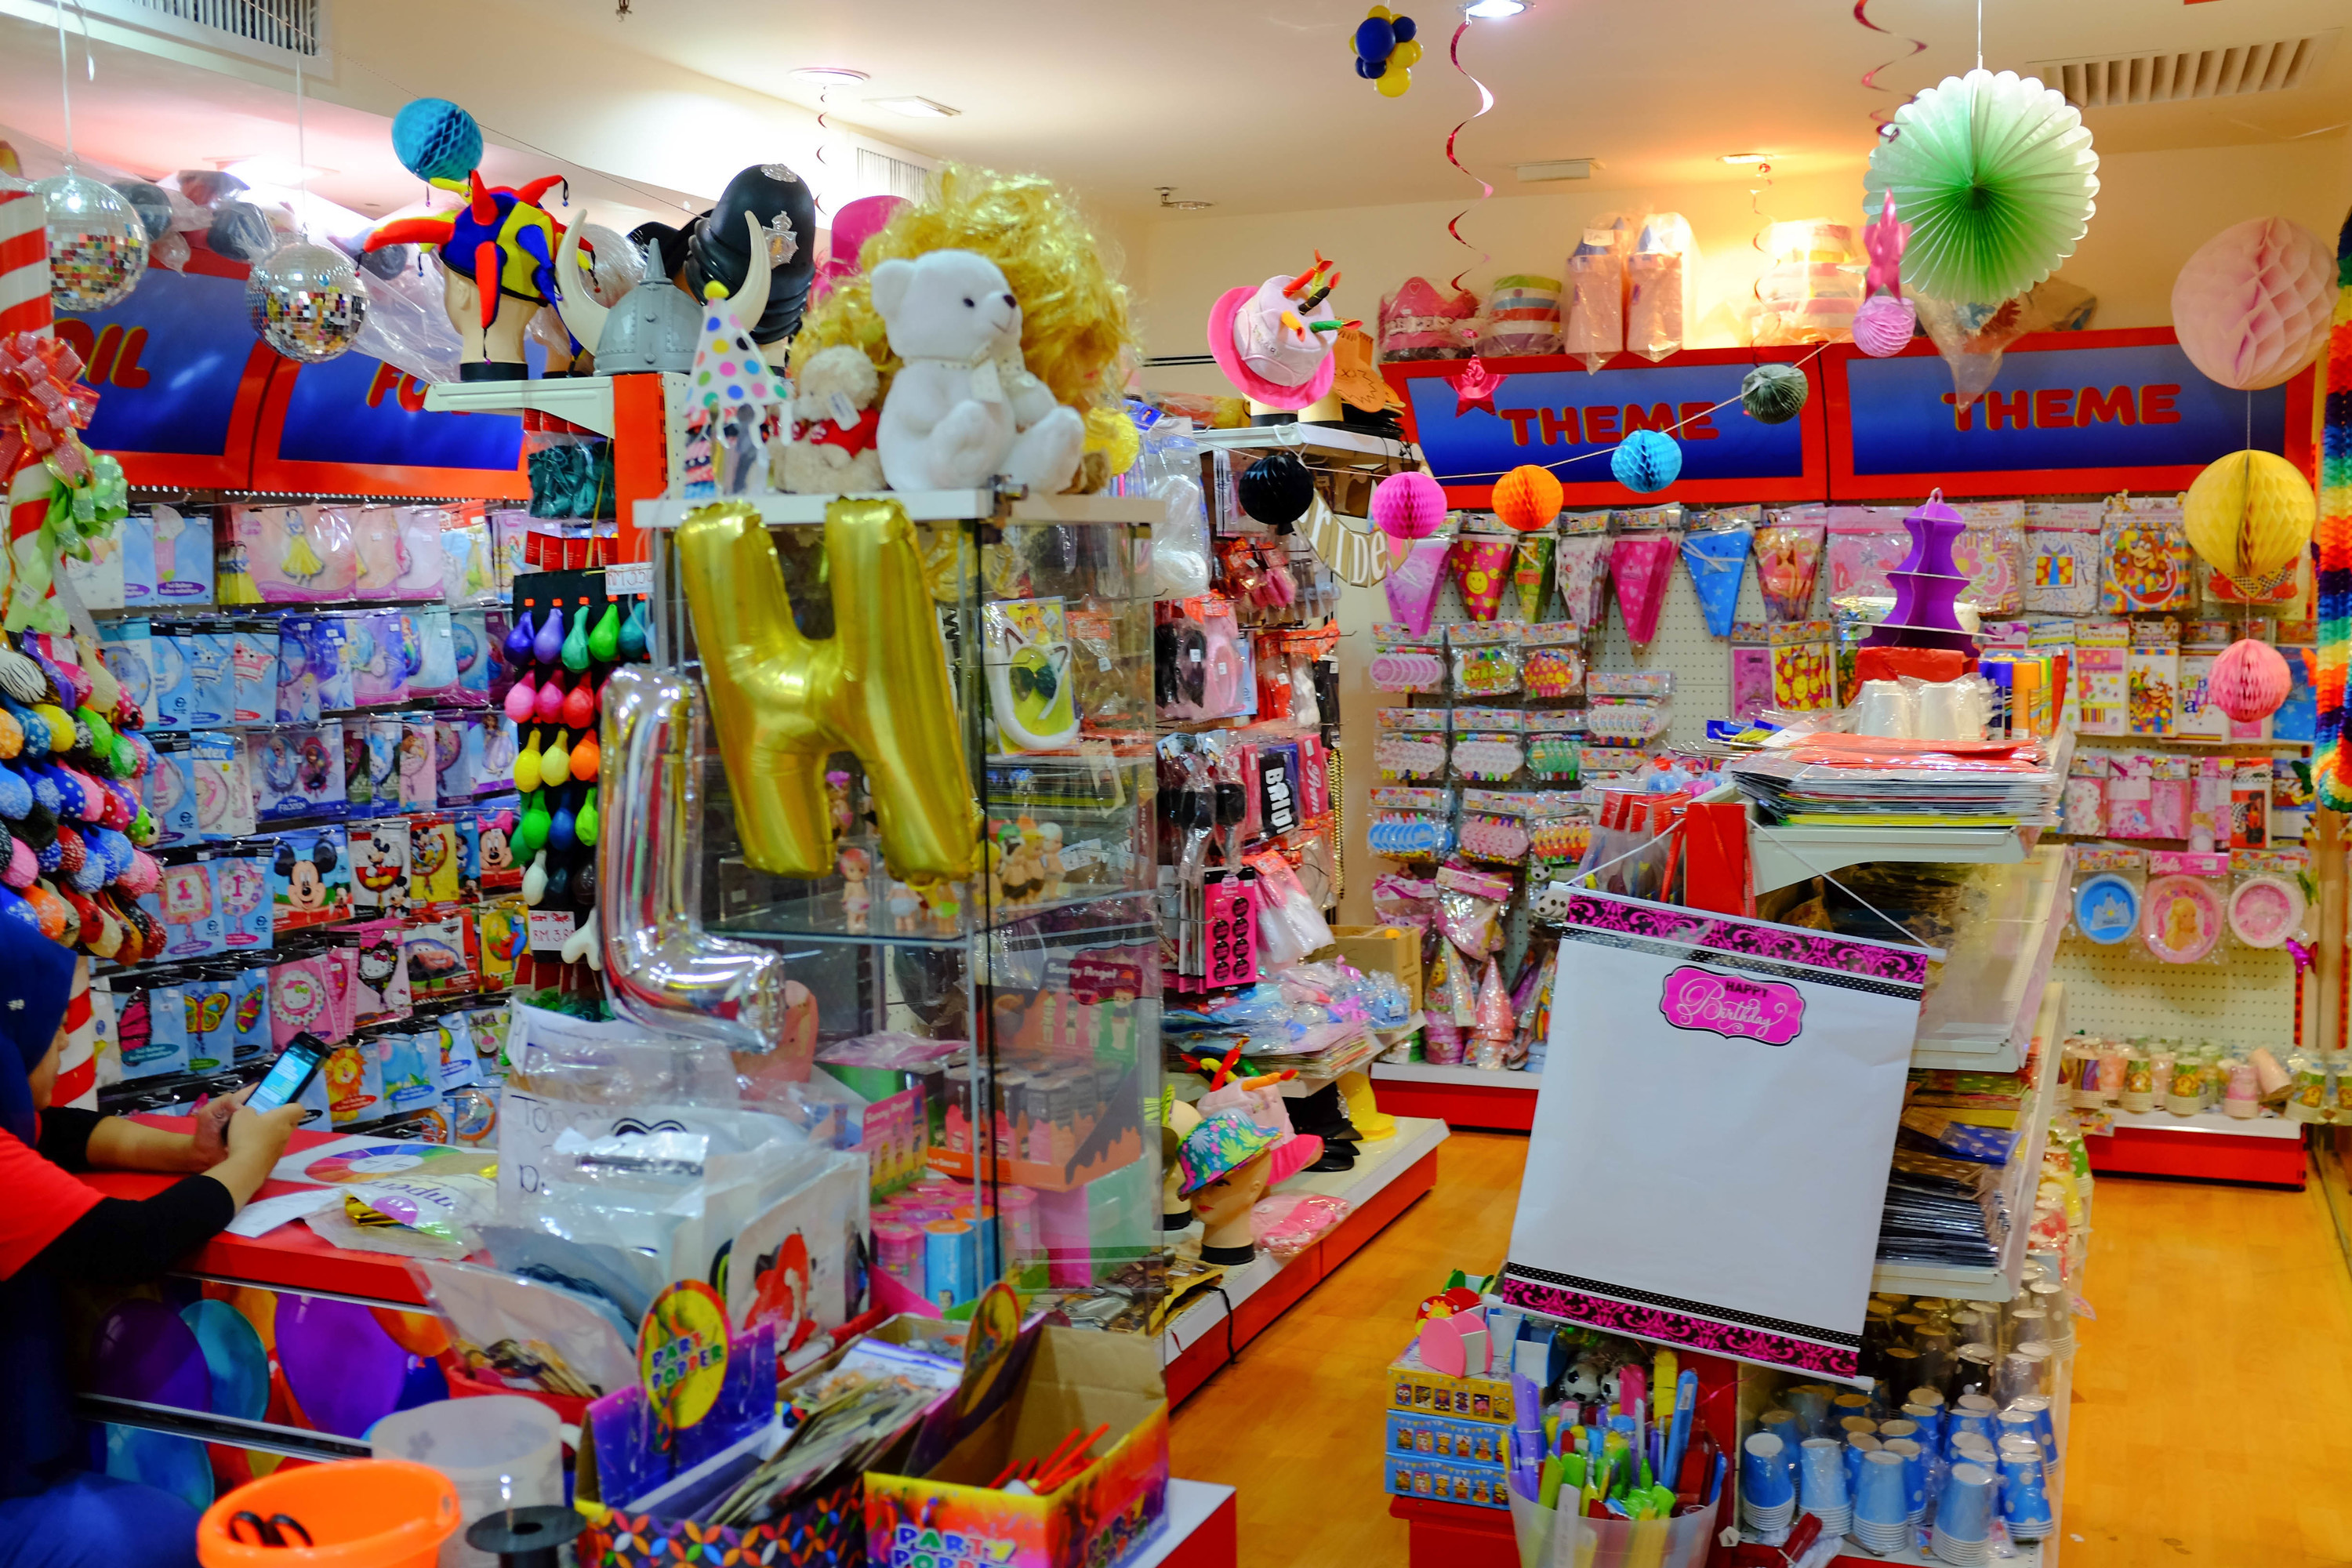 Balloons and Party Supply Store with Real Estate